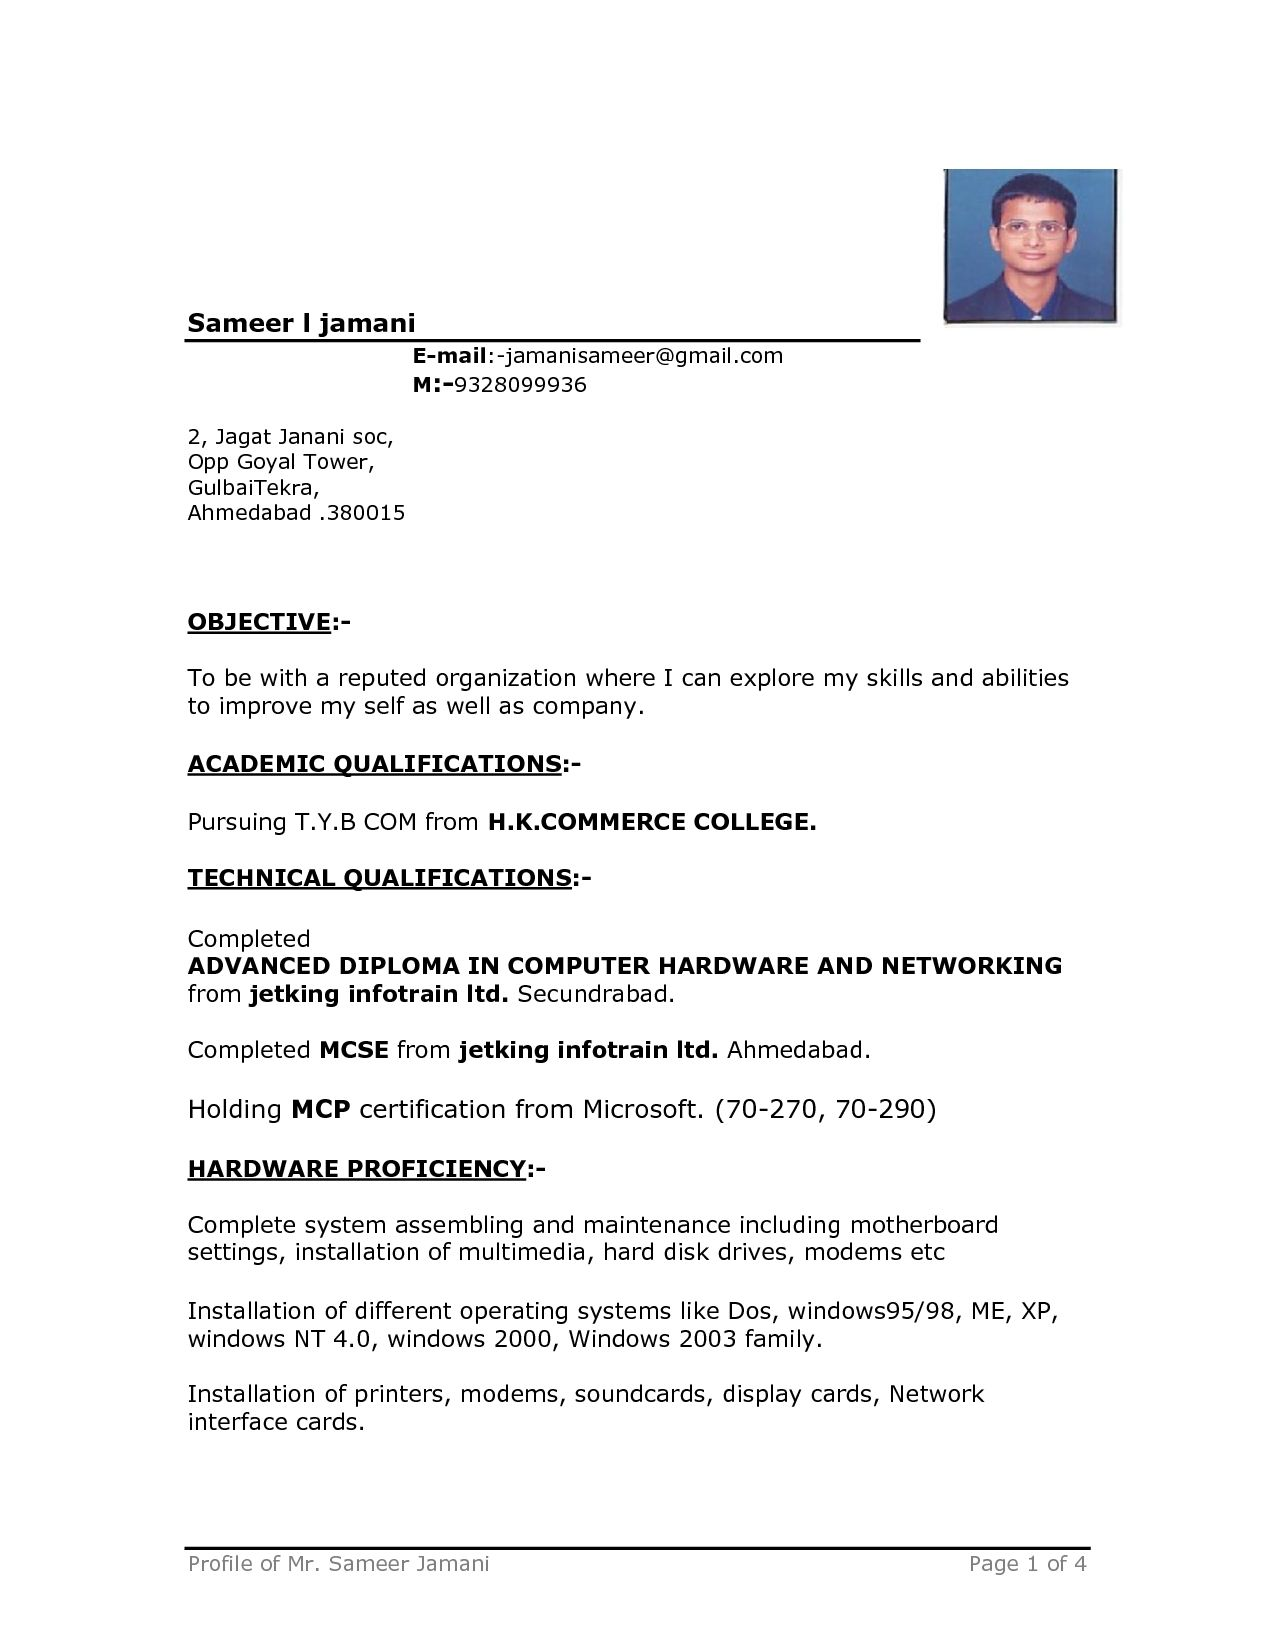 Resume Format On Word Sample Resume Format Word 52076ec40